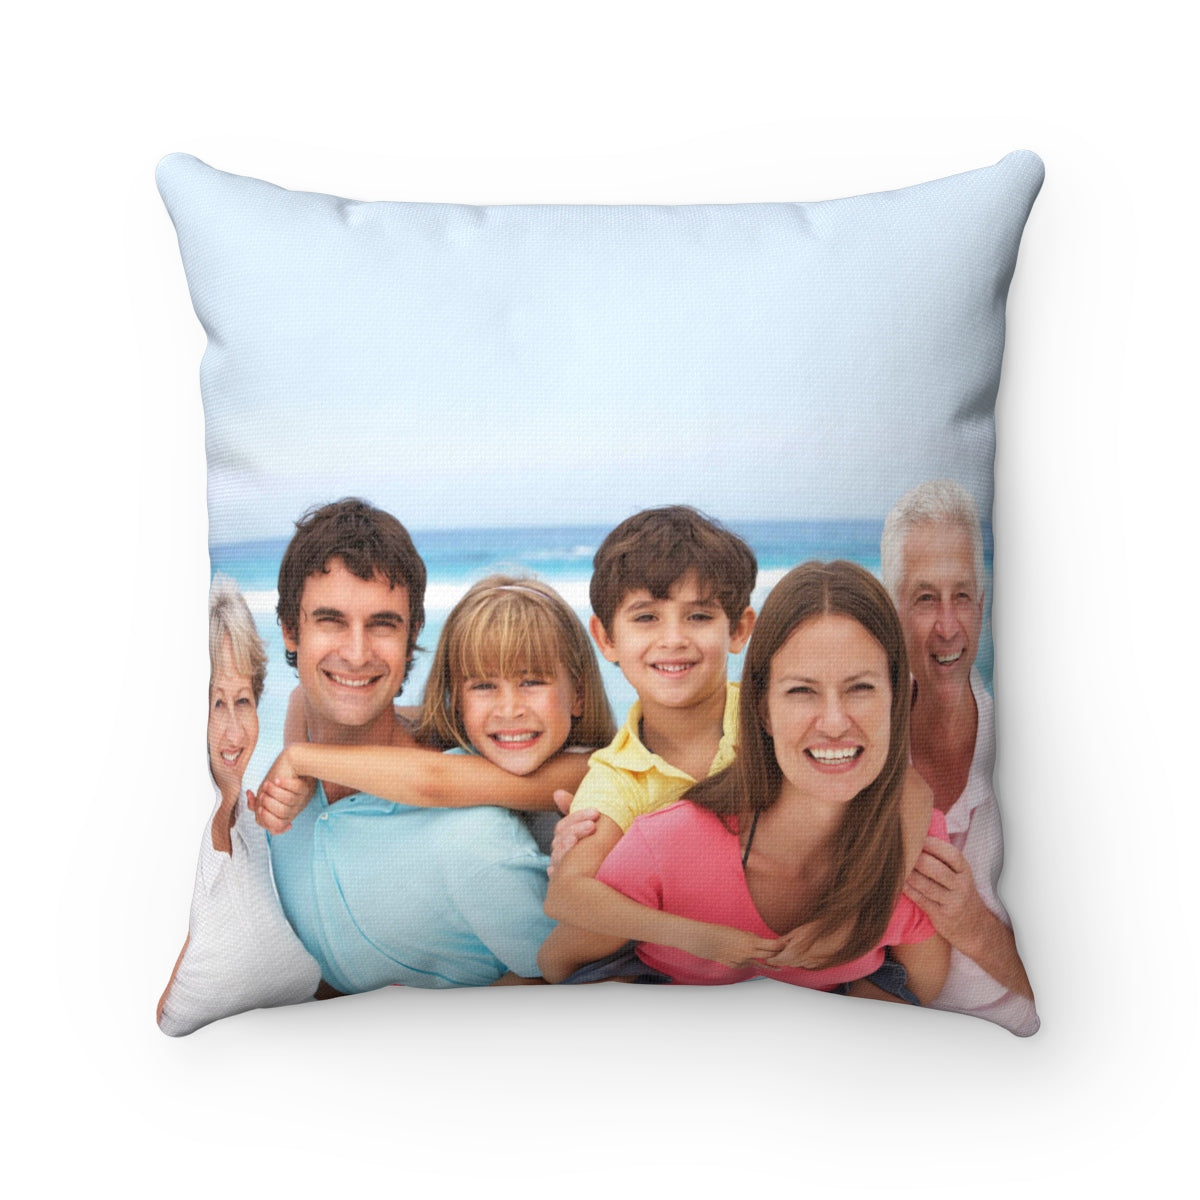 Family Personalized Square Pillow Case w/ stuffing - With your photo 2